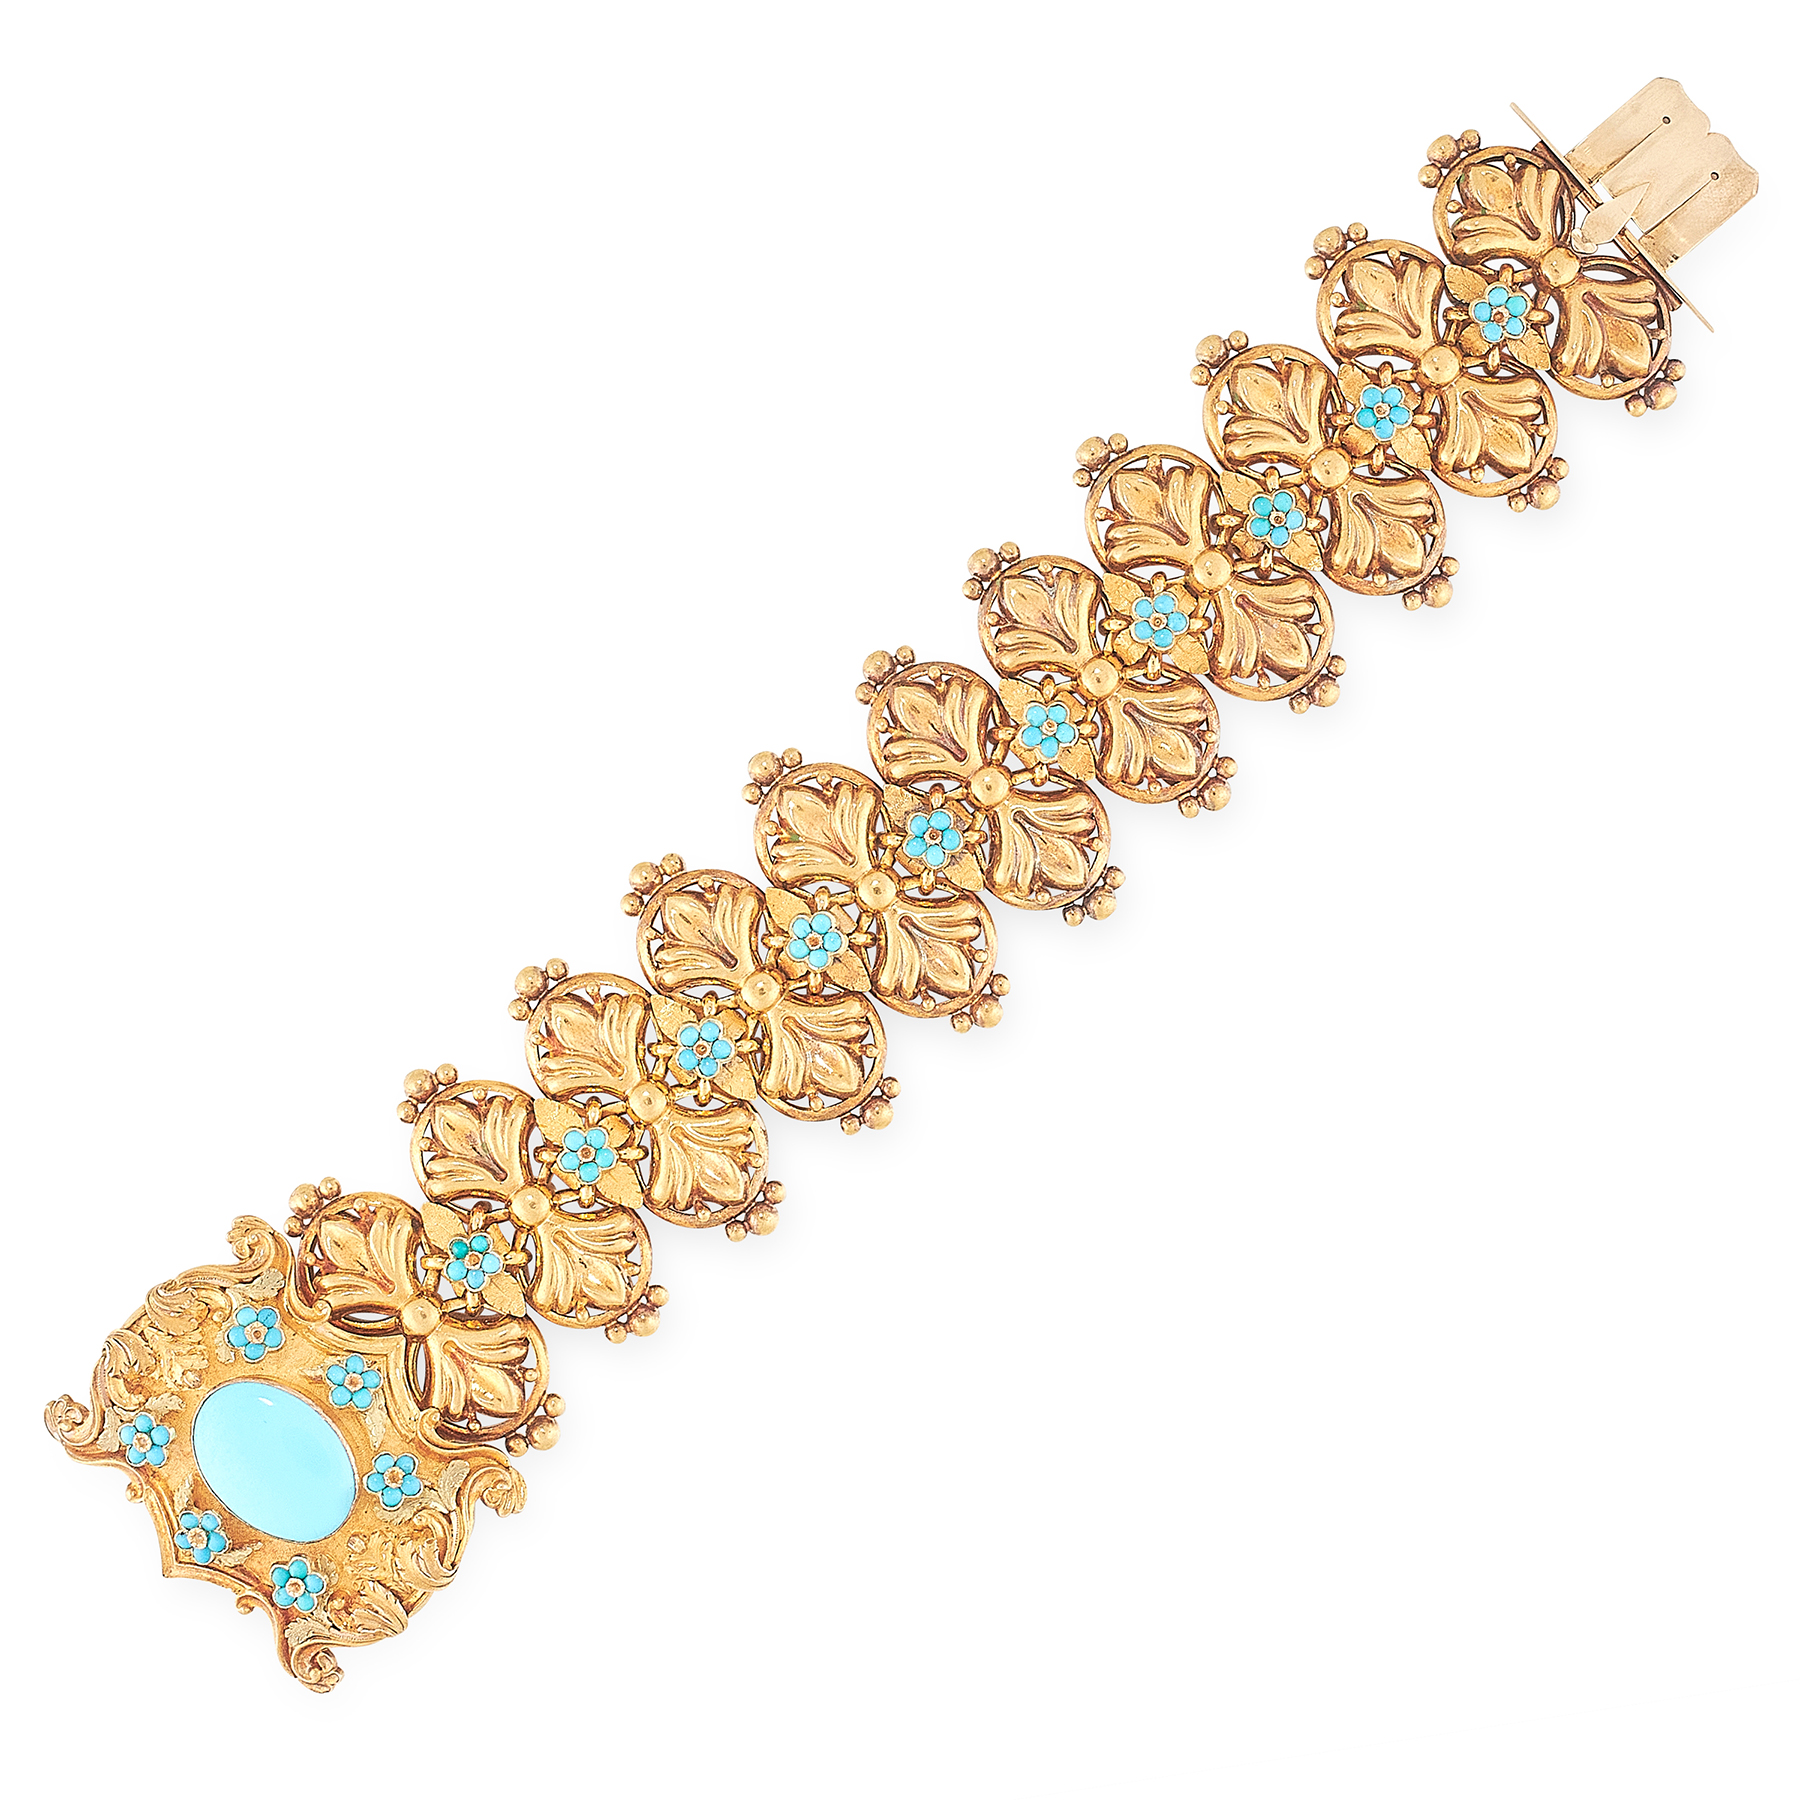 AN ANTIQUE TURQUOISE BRACELET, 19TH CENTURY comprising a row of foliate links, jewelled with